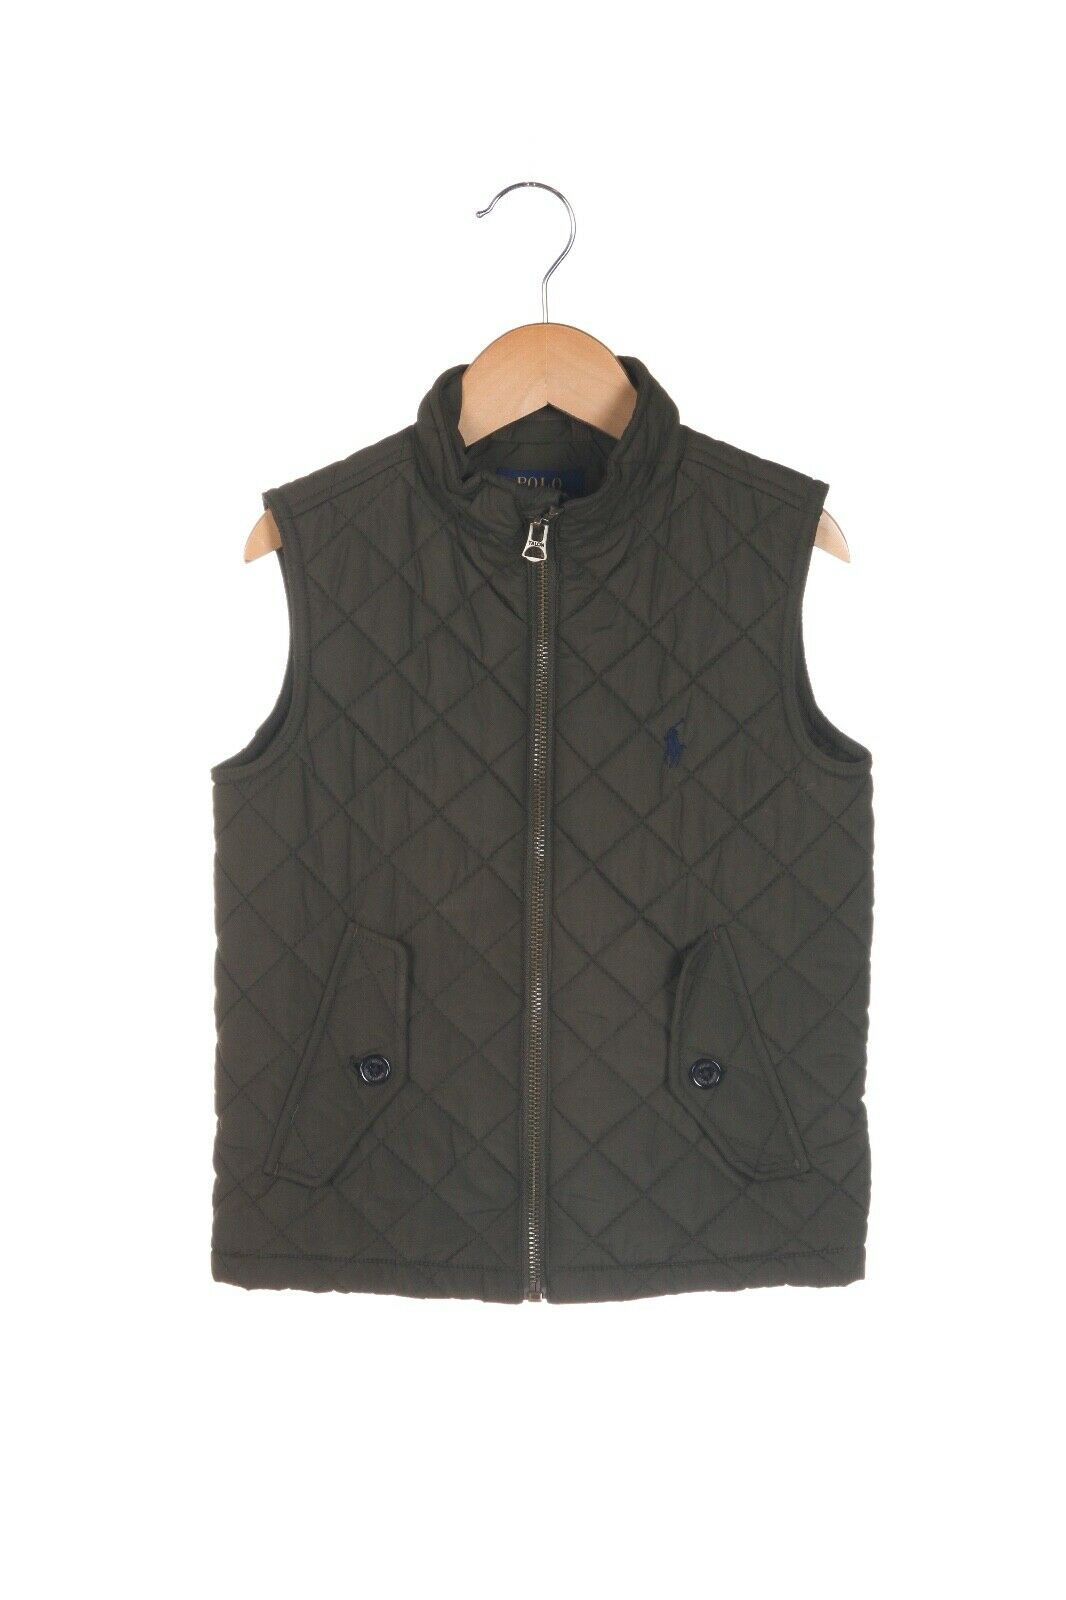 POLO Ralph Lauren Quilted Zip Up Vest Size 3 / 3T